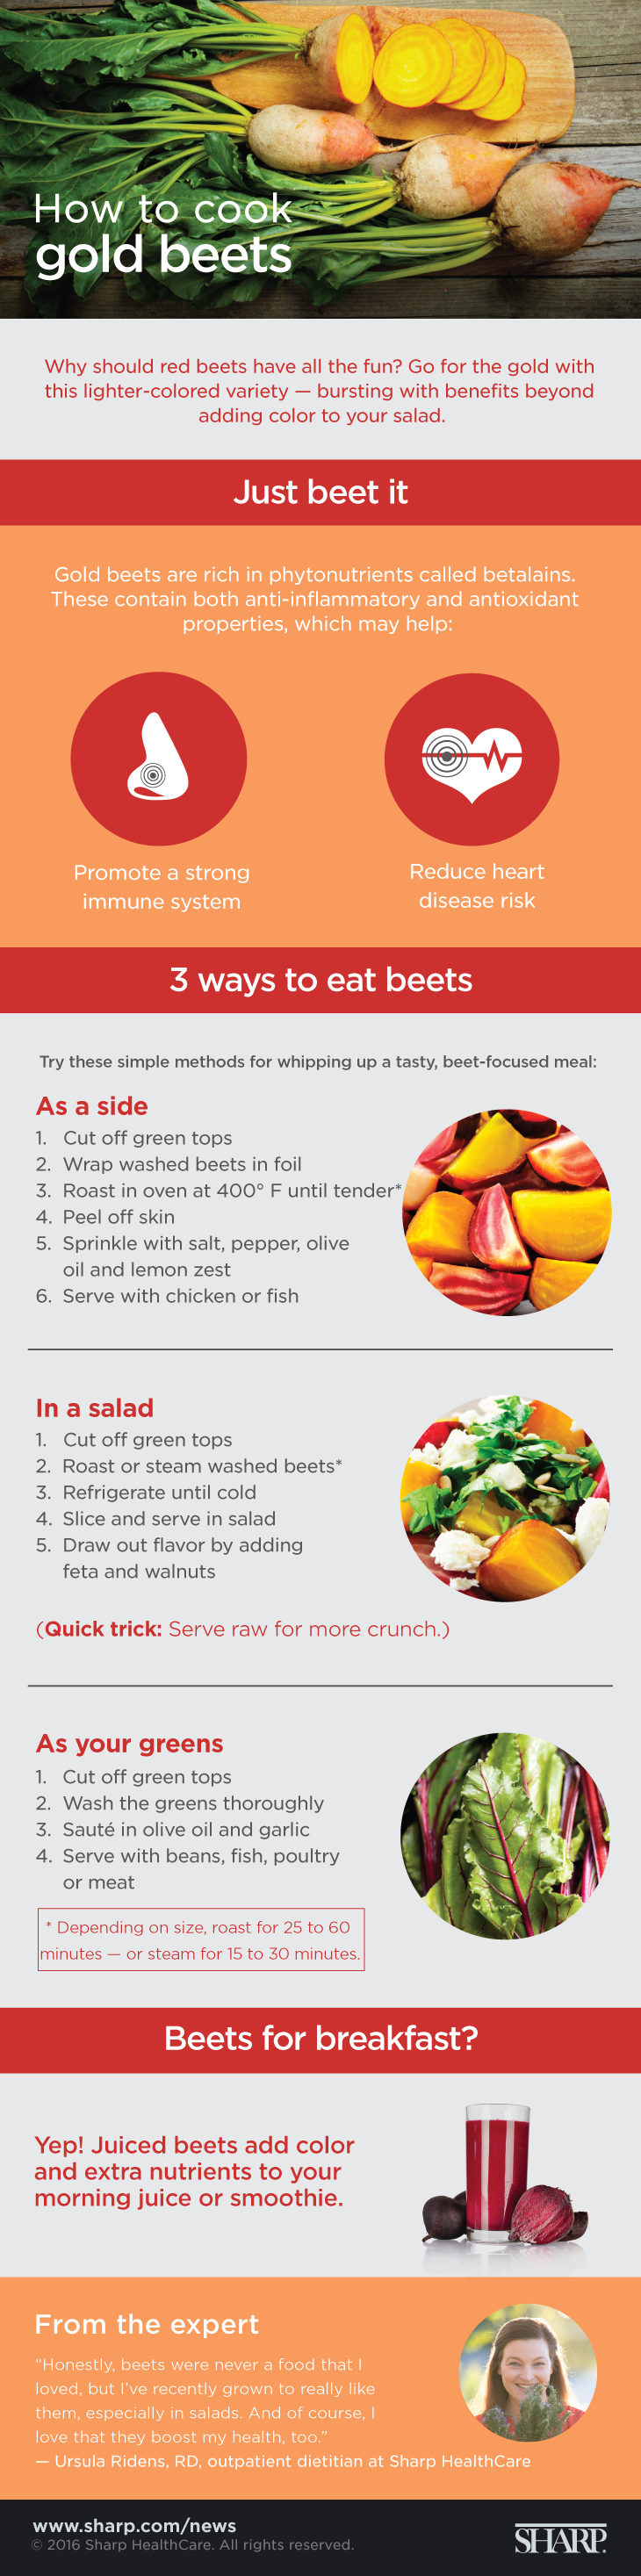 Gold beets infographic